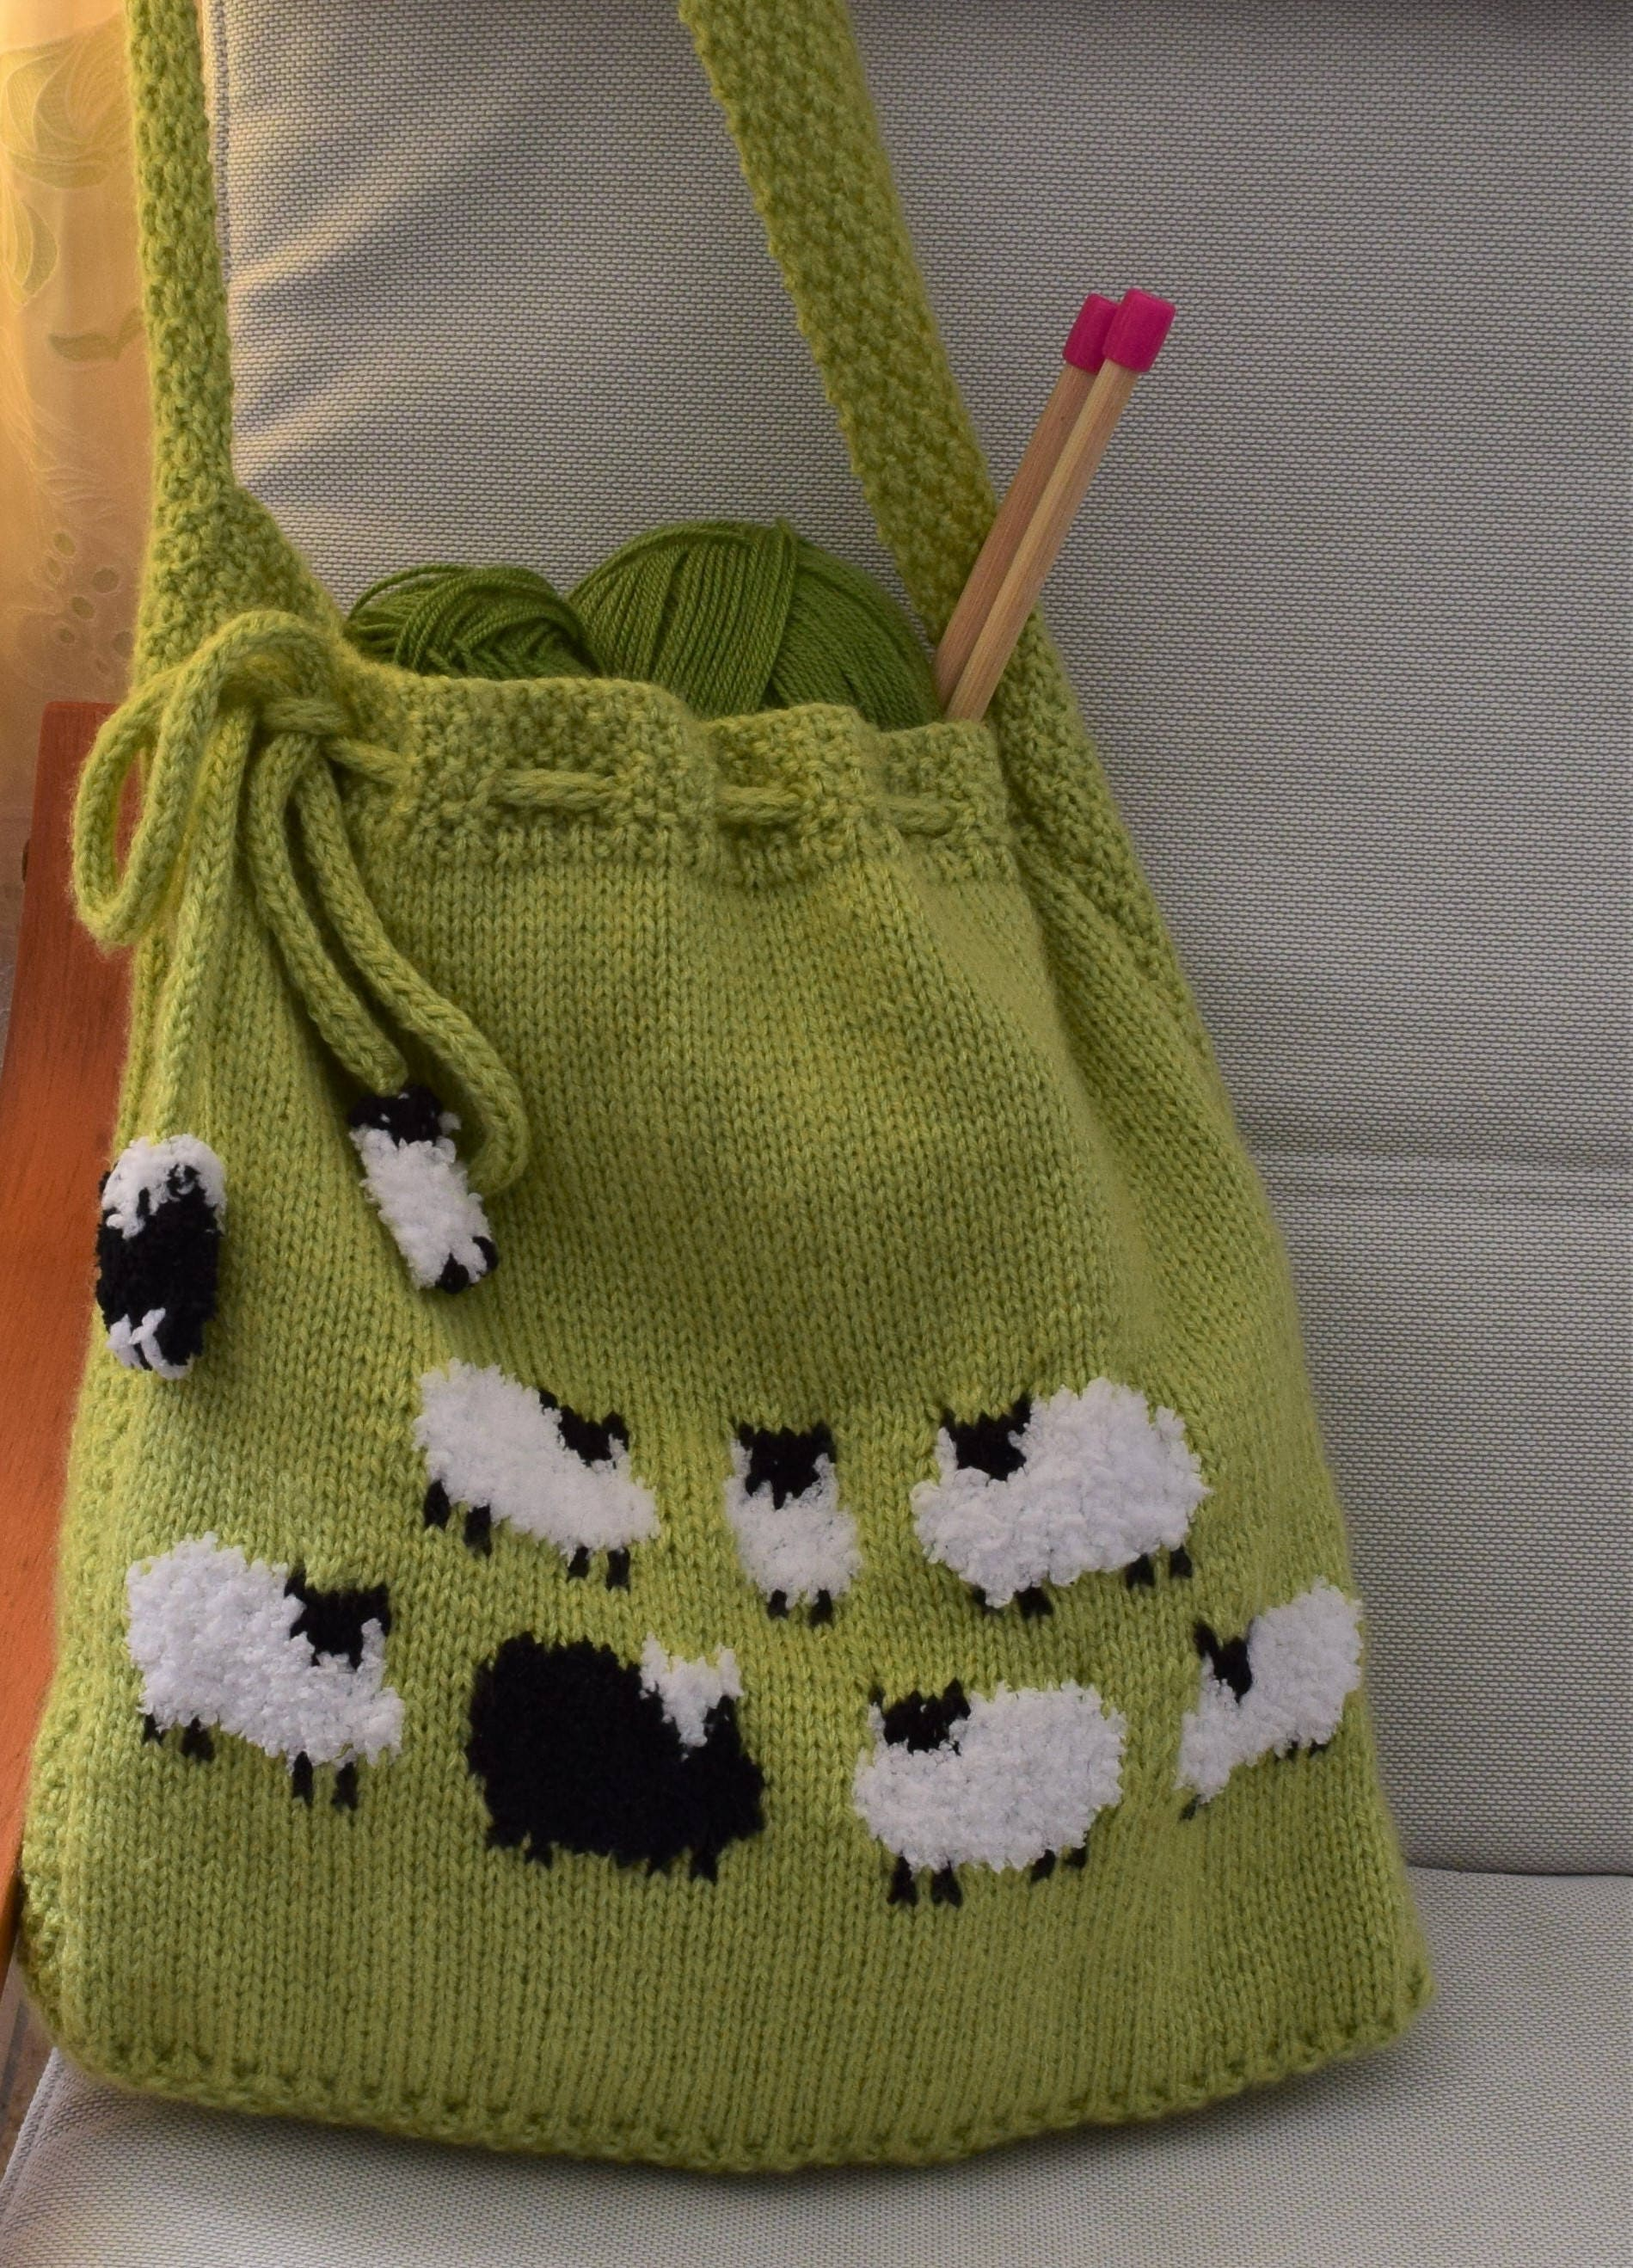 Bag knitting pattern knitting bag pattern handmade tote bag gallery photo gallery photo gallery photo bankloansurffo Gallery